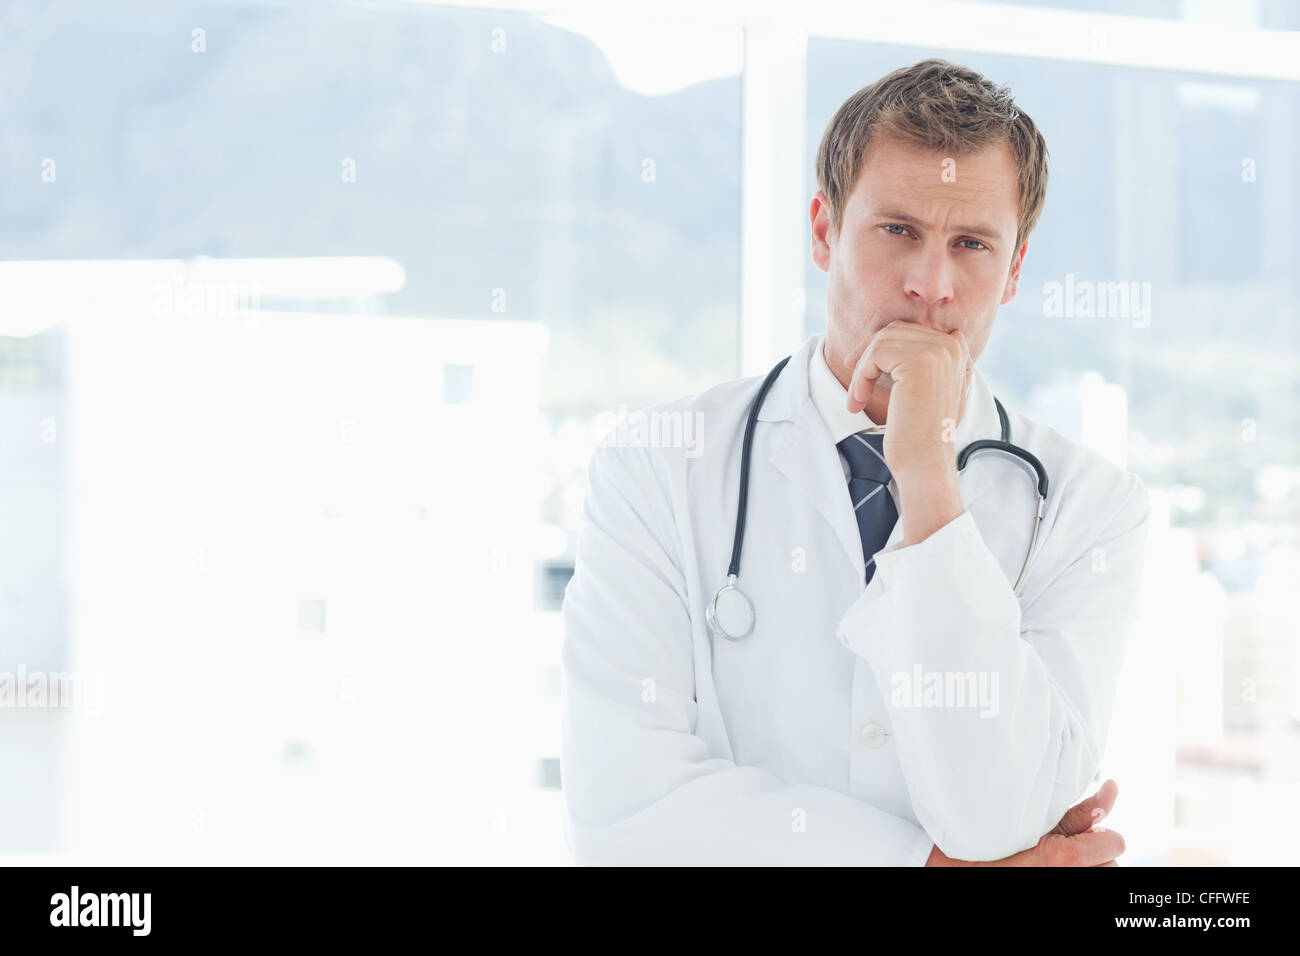 Doctor in thinkers pose - Stock Image